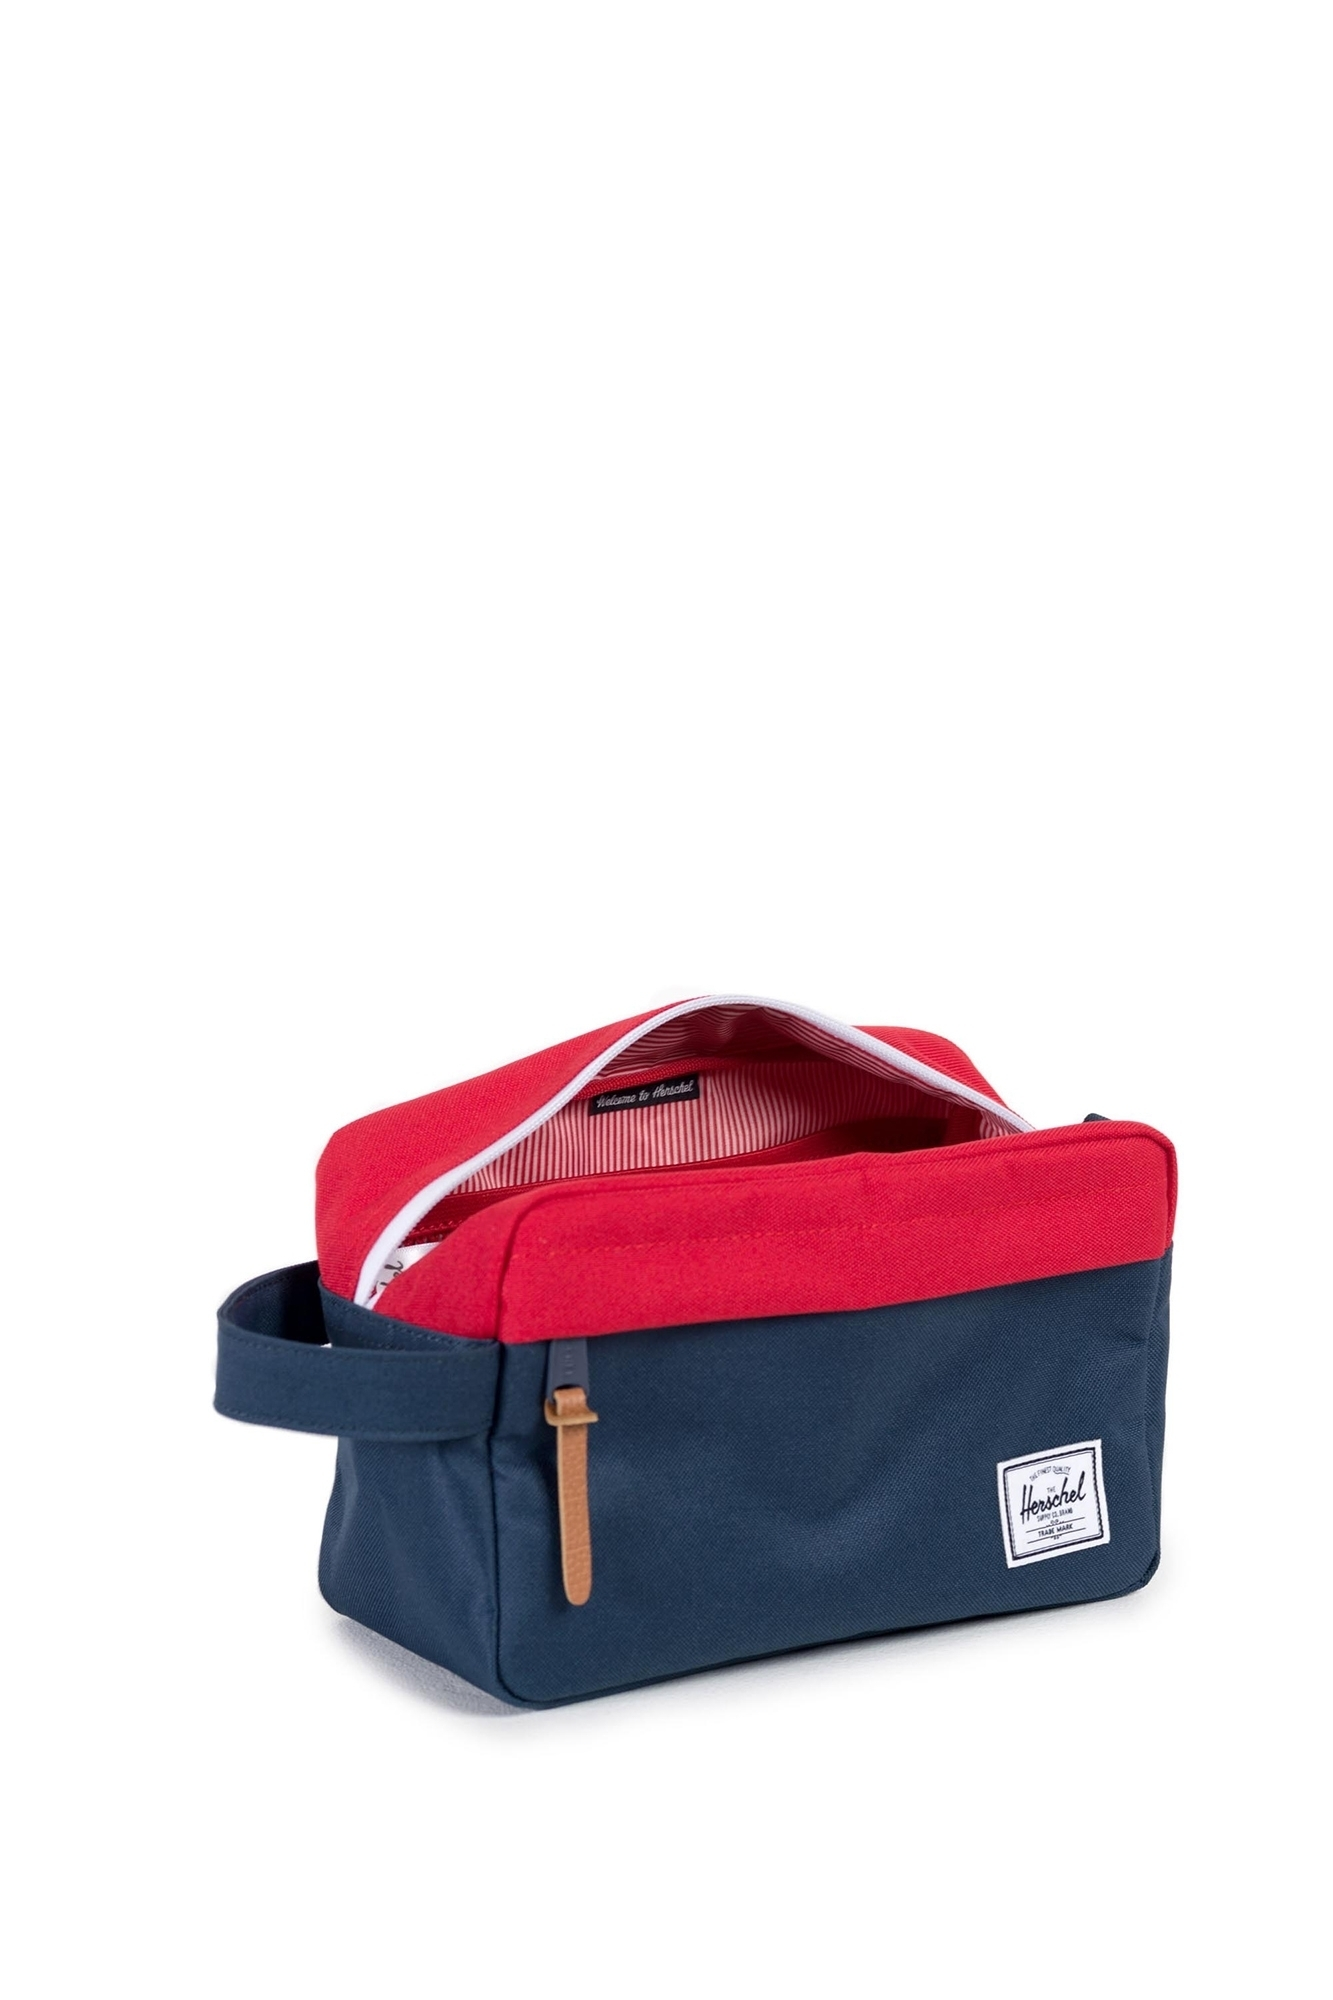 Herschel - Beauty chapter classic travel navy/red